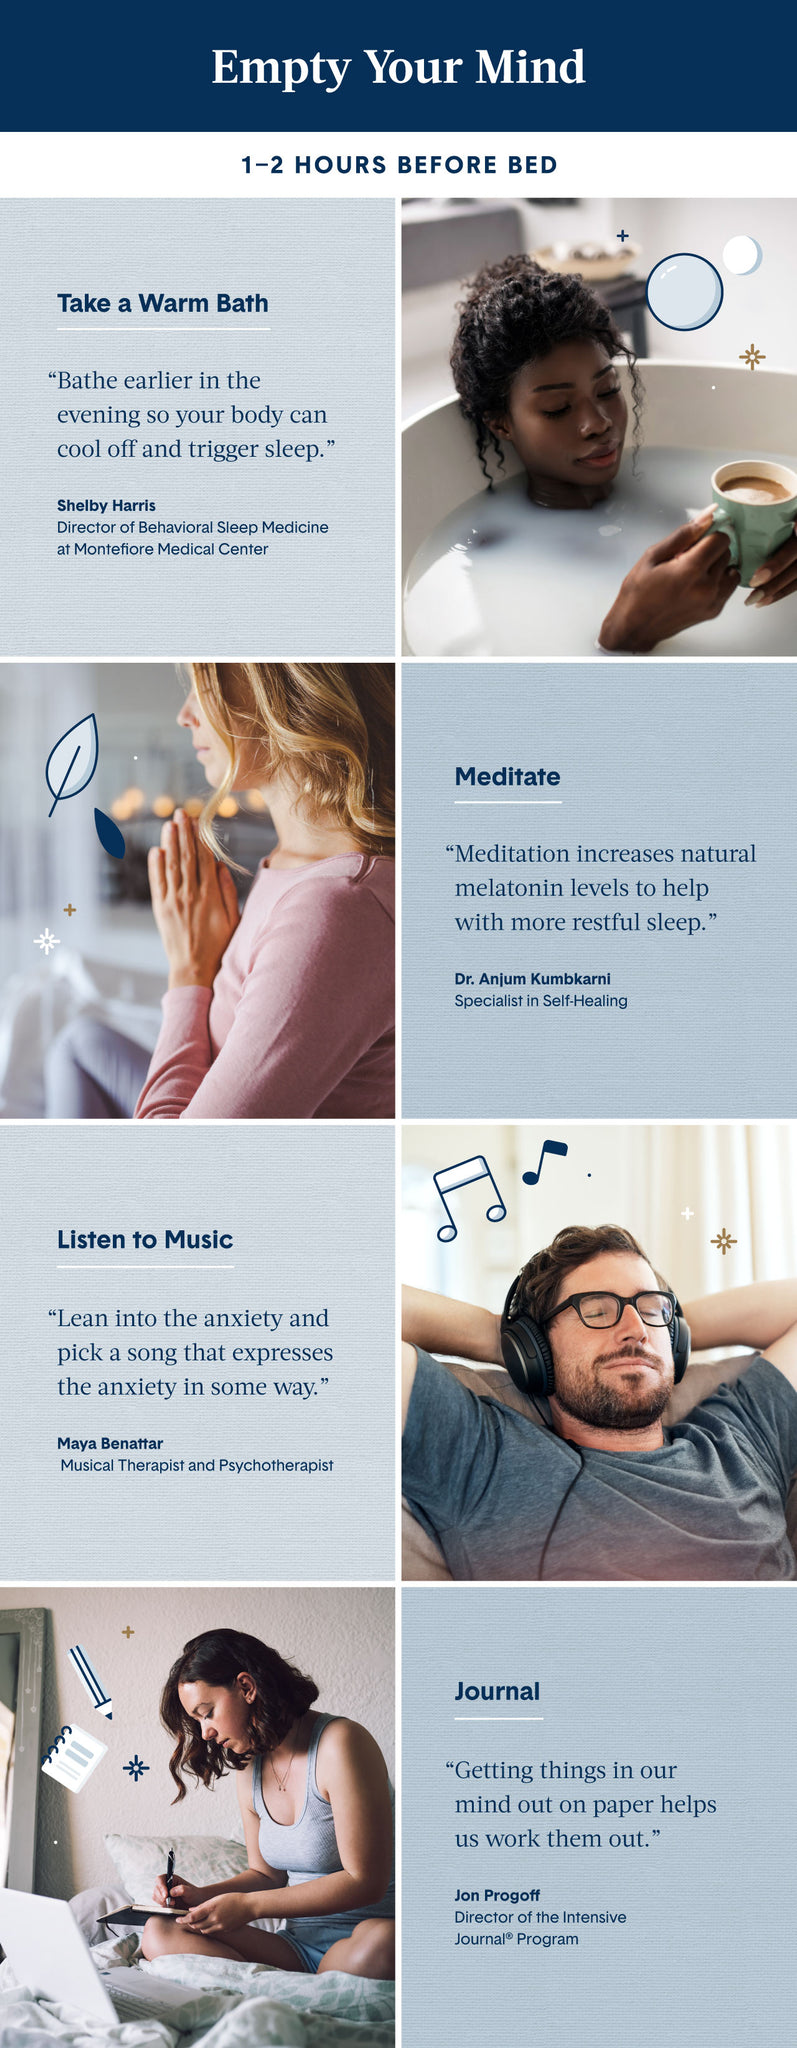 8 grid layout images of people relaxing before bed and blue boxes offering tips on how to empty your mind